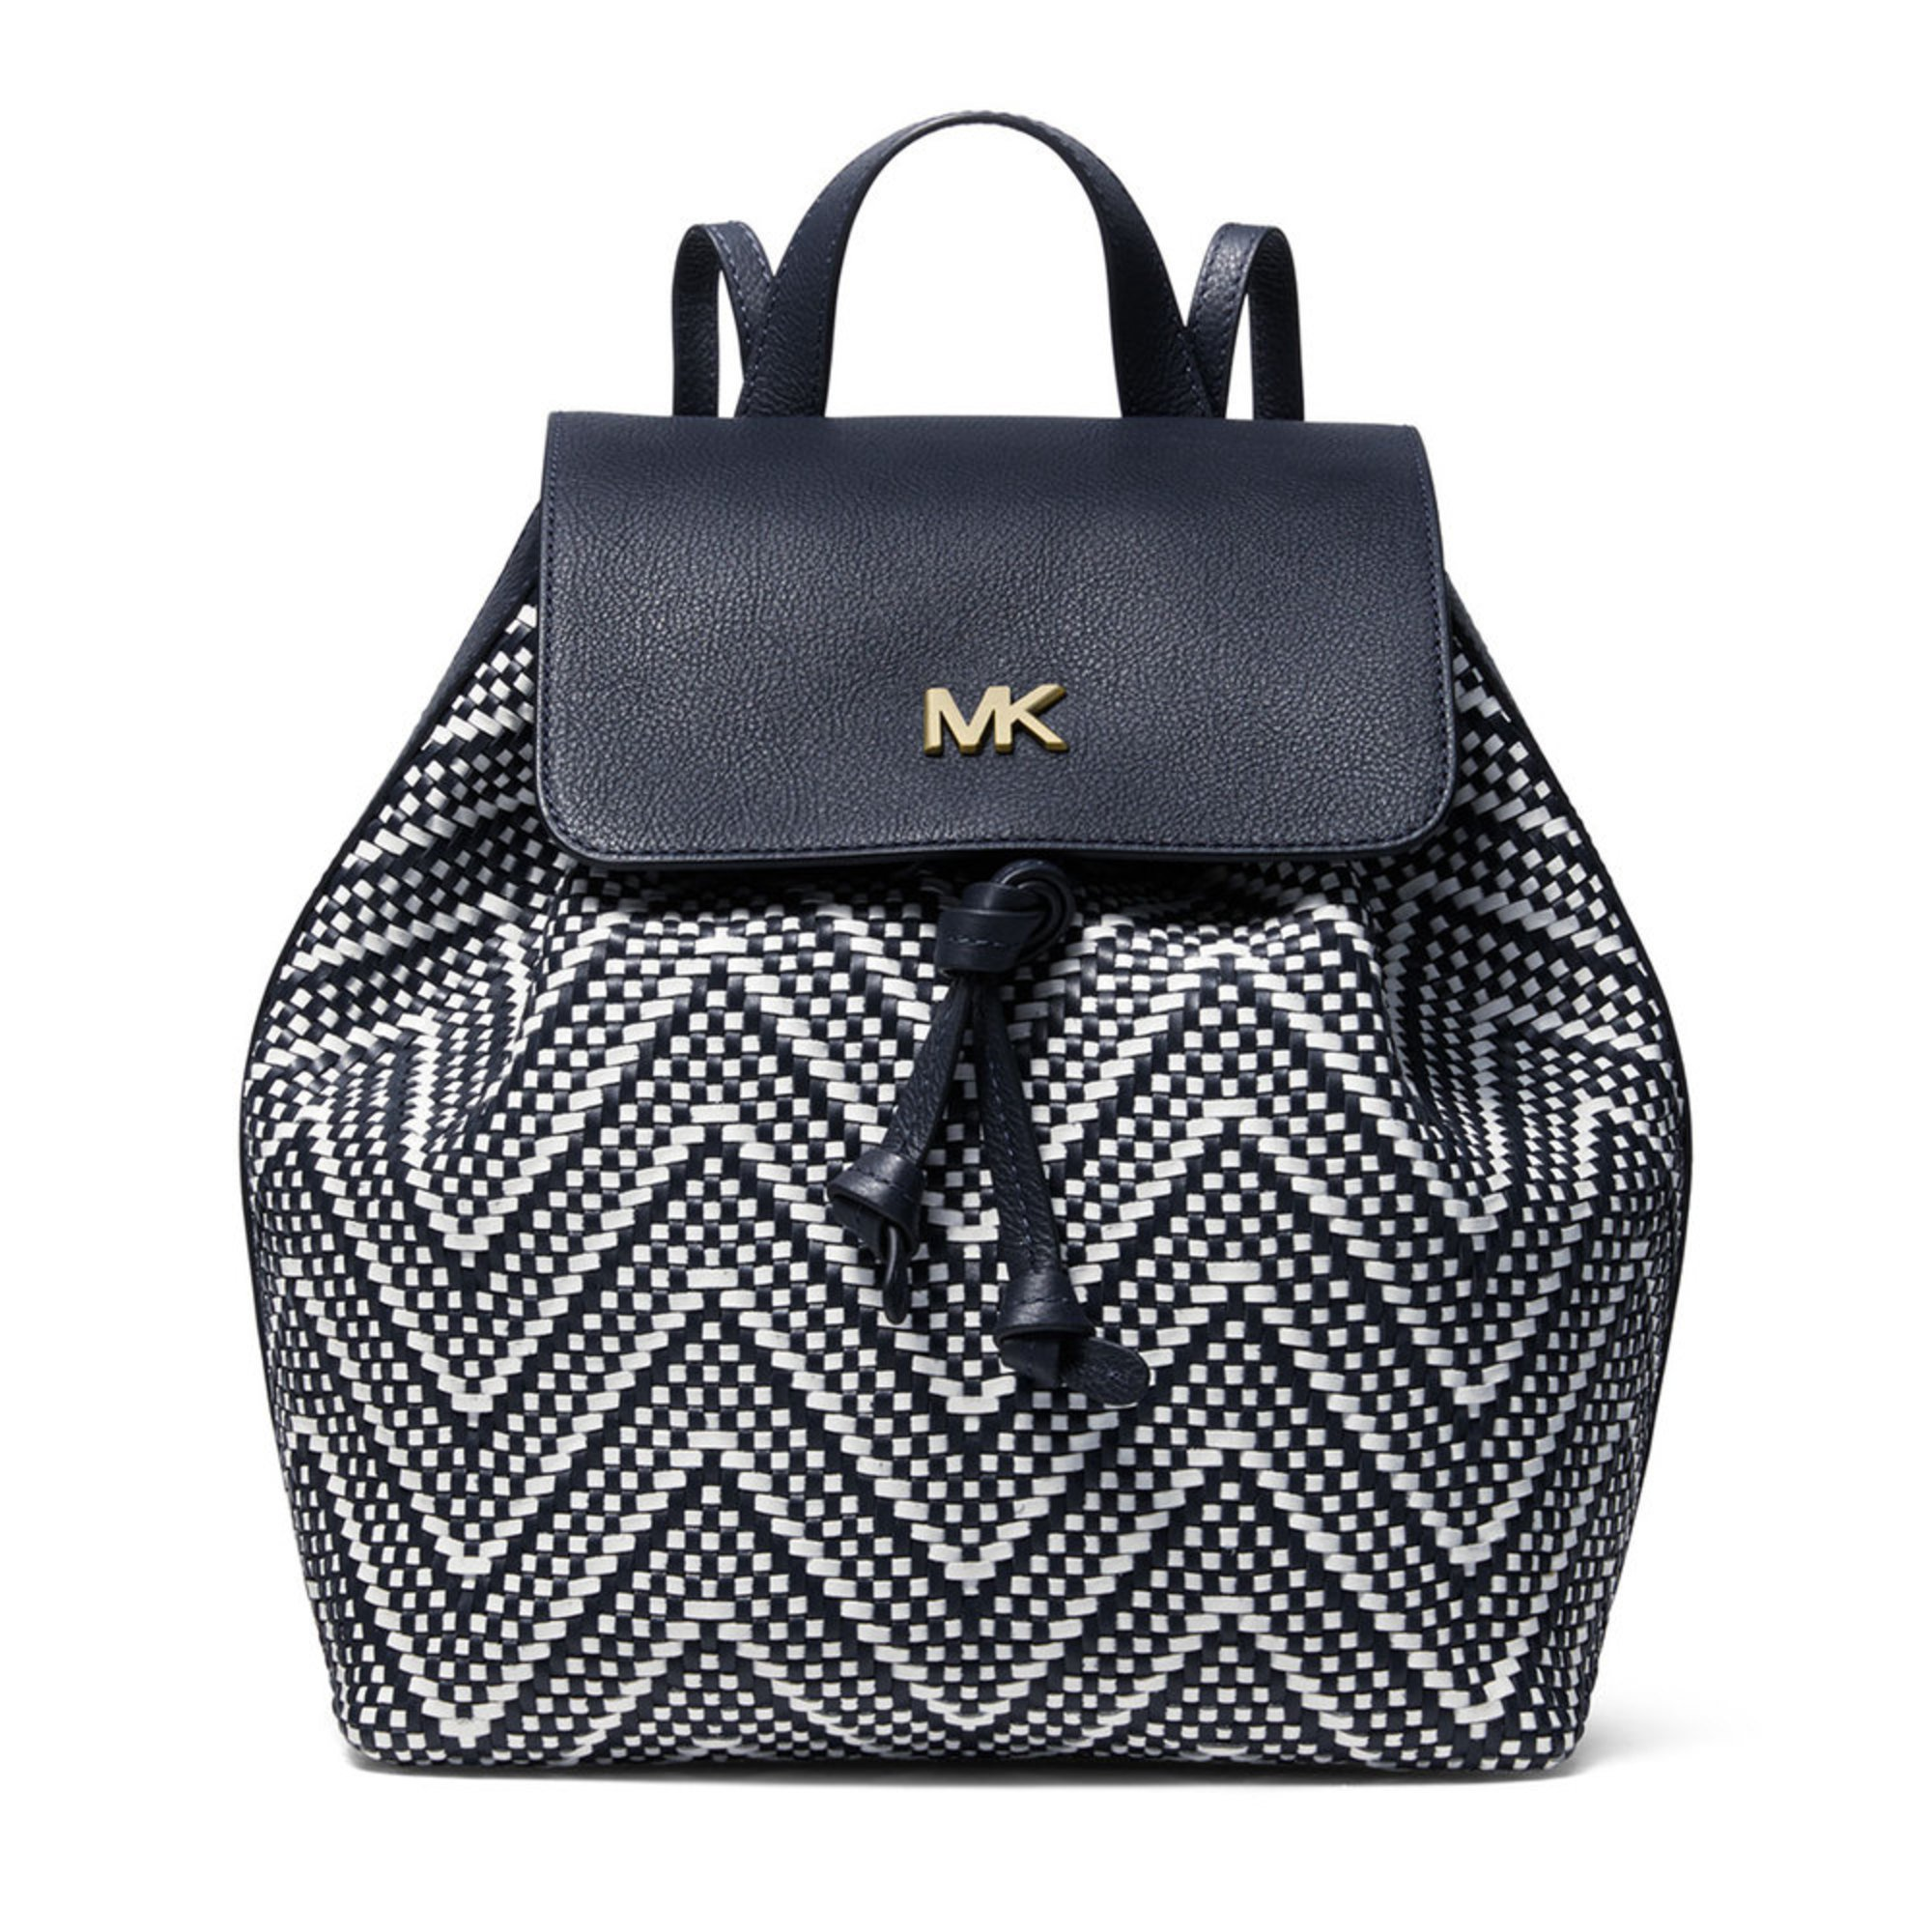 5315aa7870ac Michael Kors Junie Medium Flap Backpack | Women's Backpacks ...